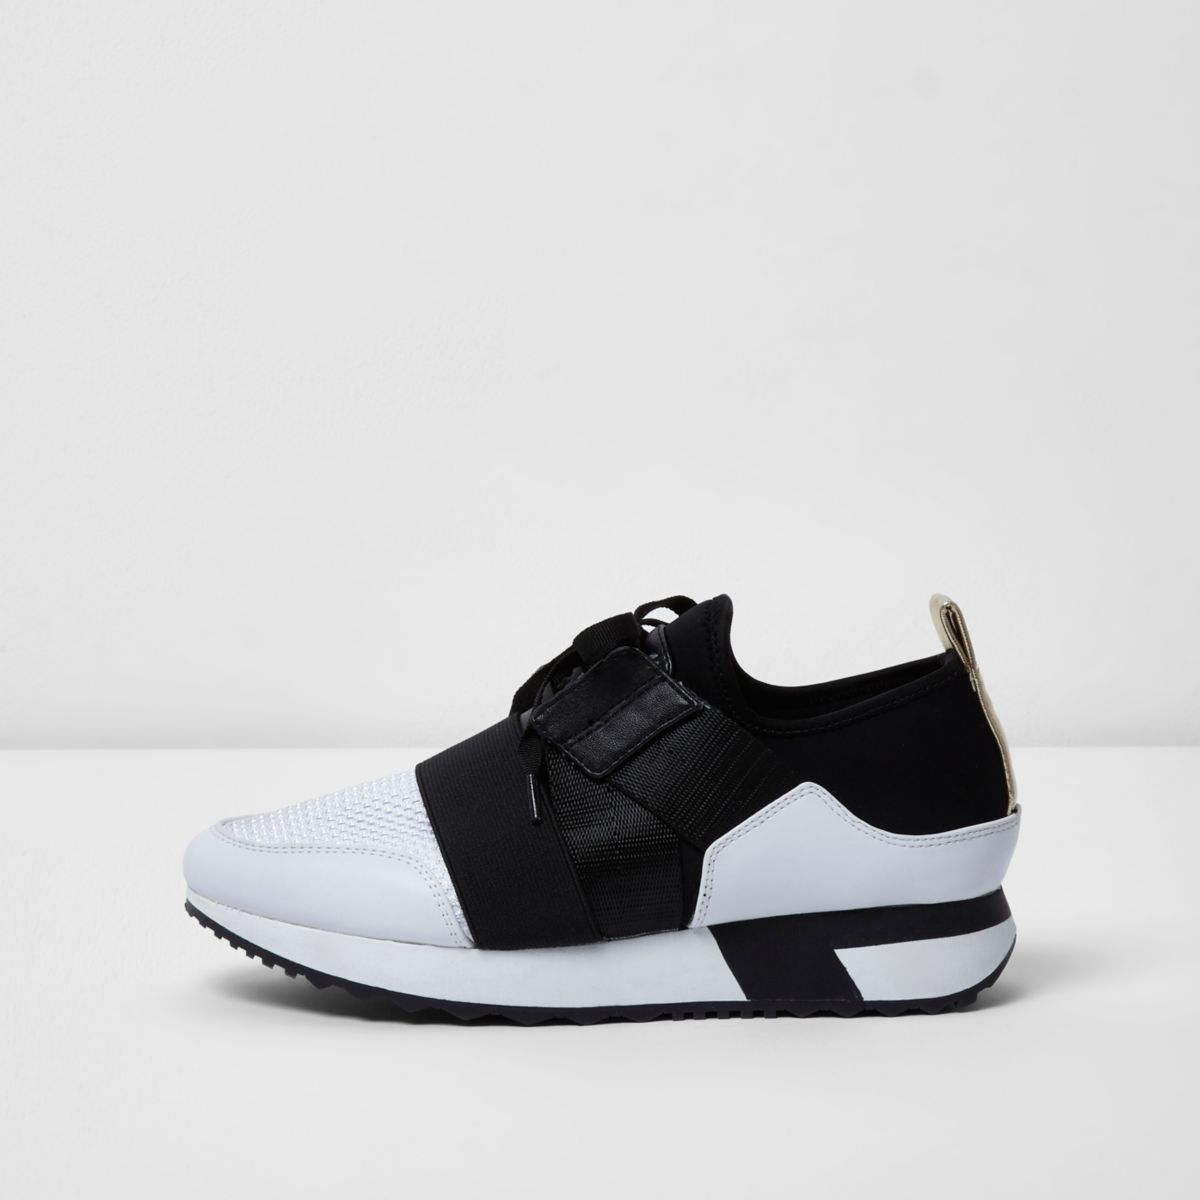 White and black elastic strap runner sneakers